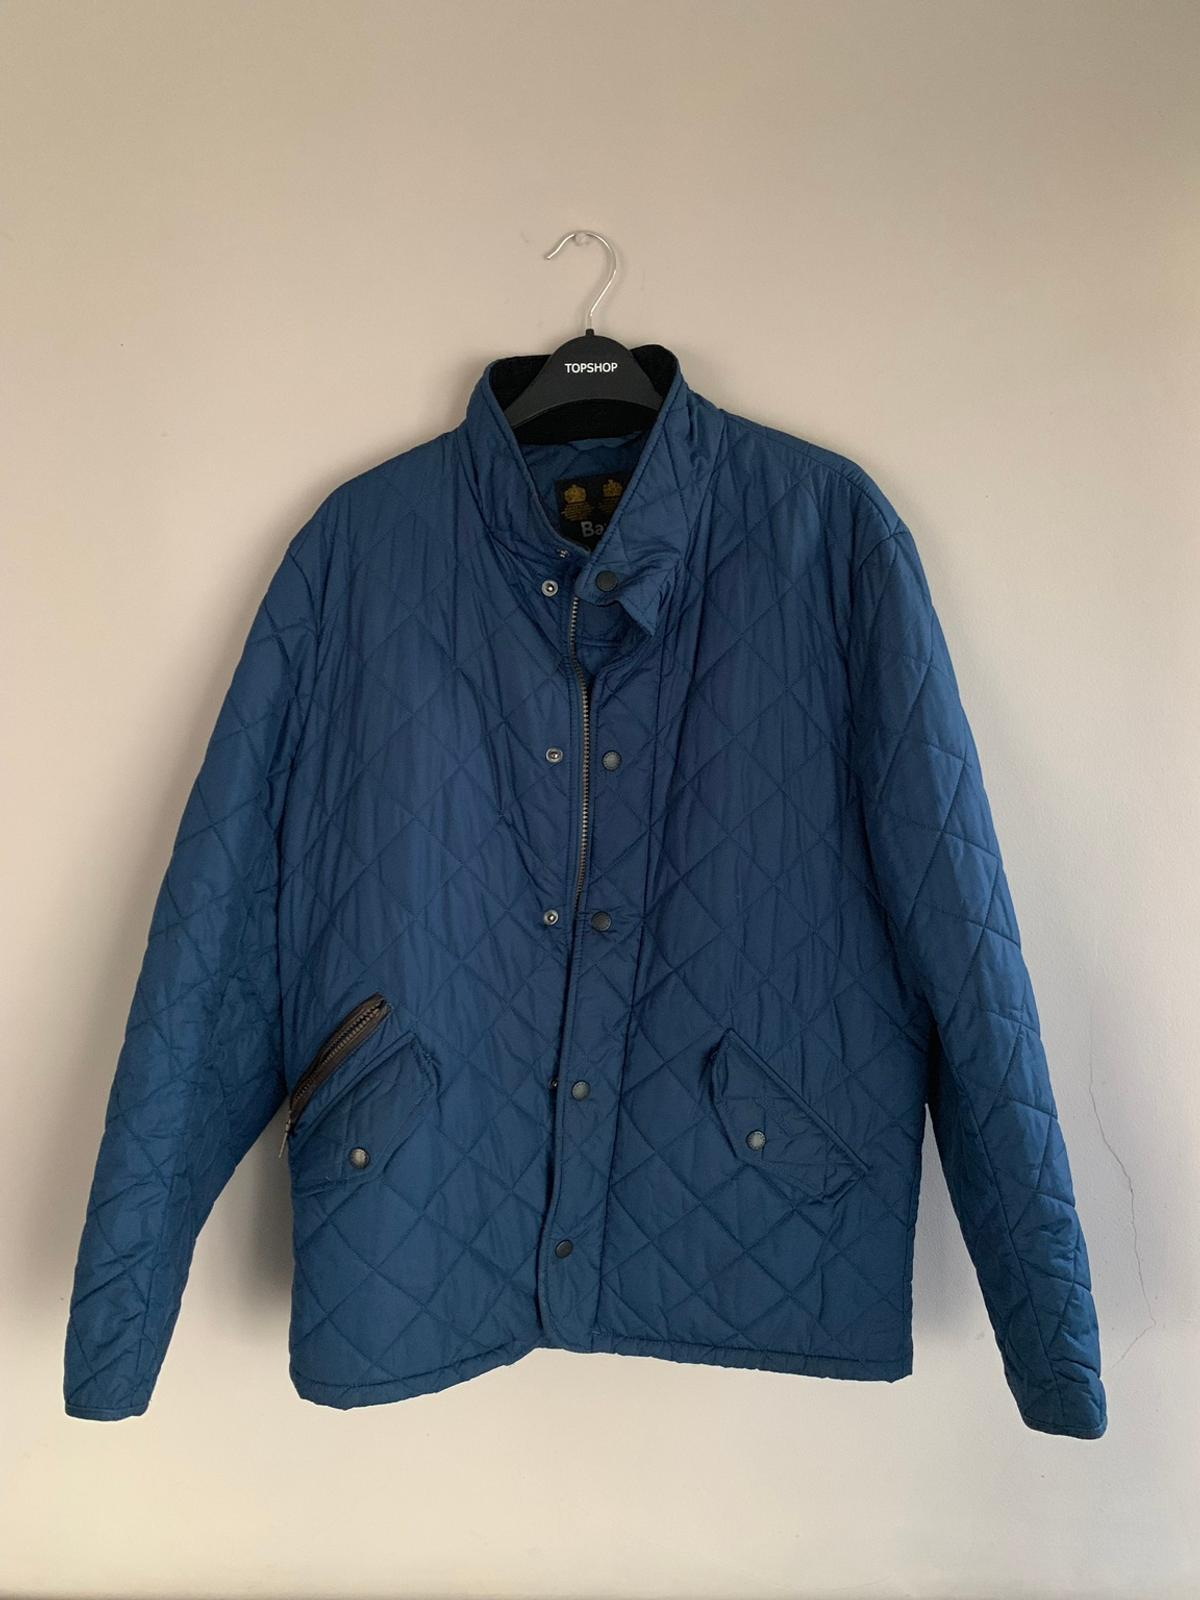 Blue, mens, small, like new